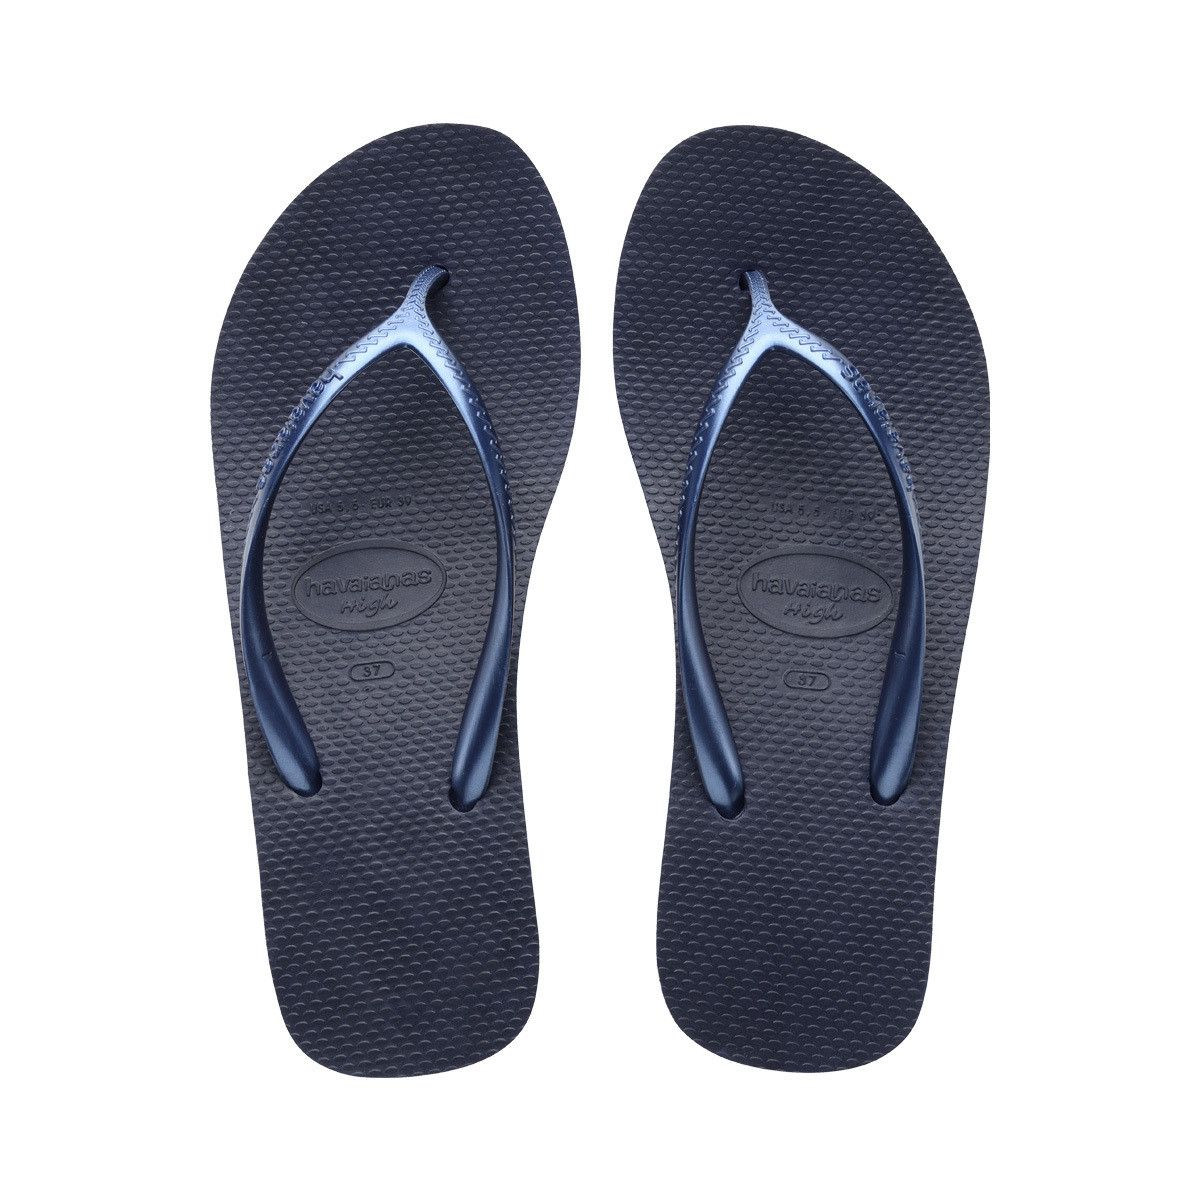 47b4b4bcc6dad Havaianas High Fashion Navy Blue Flip Flops Price From  37